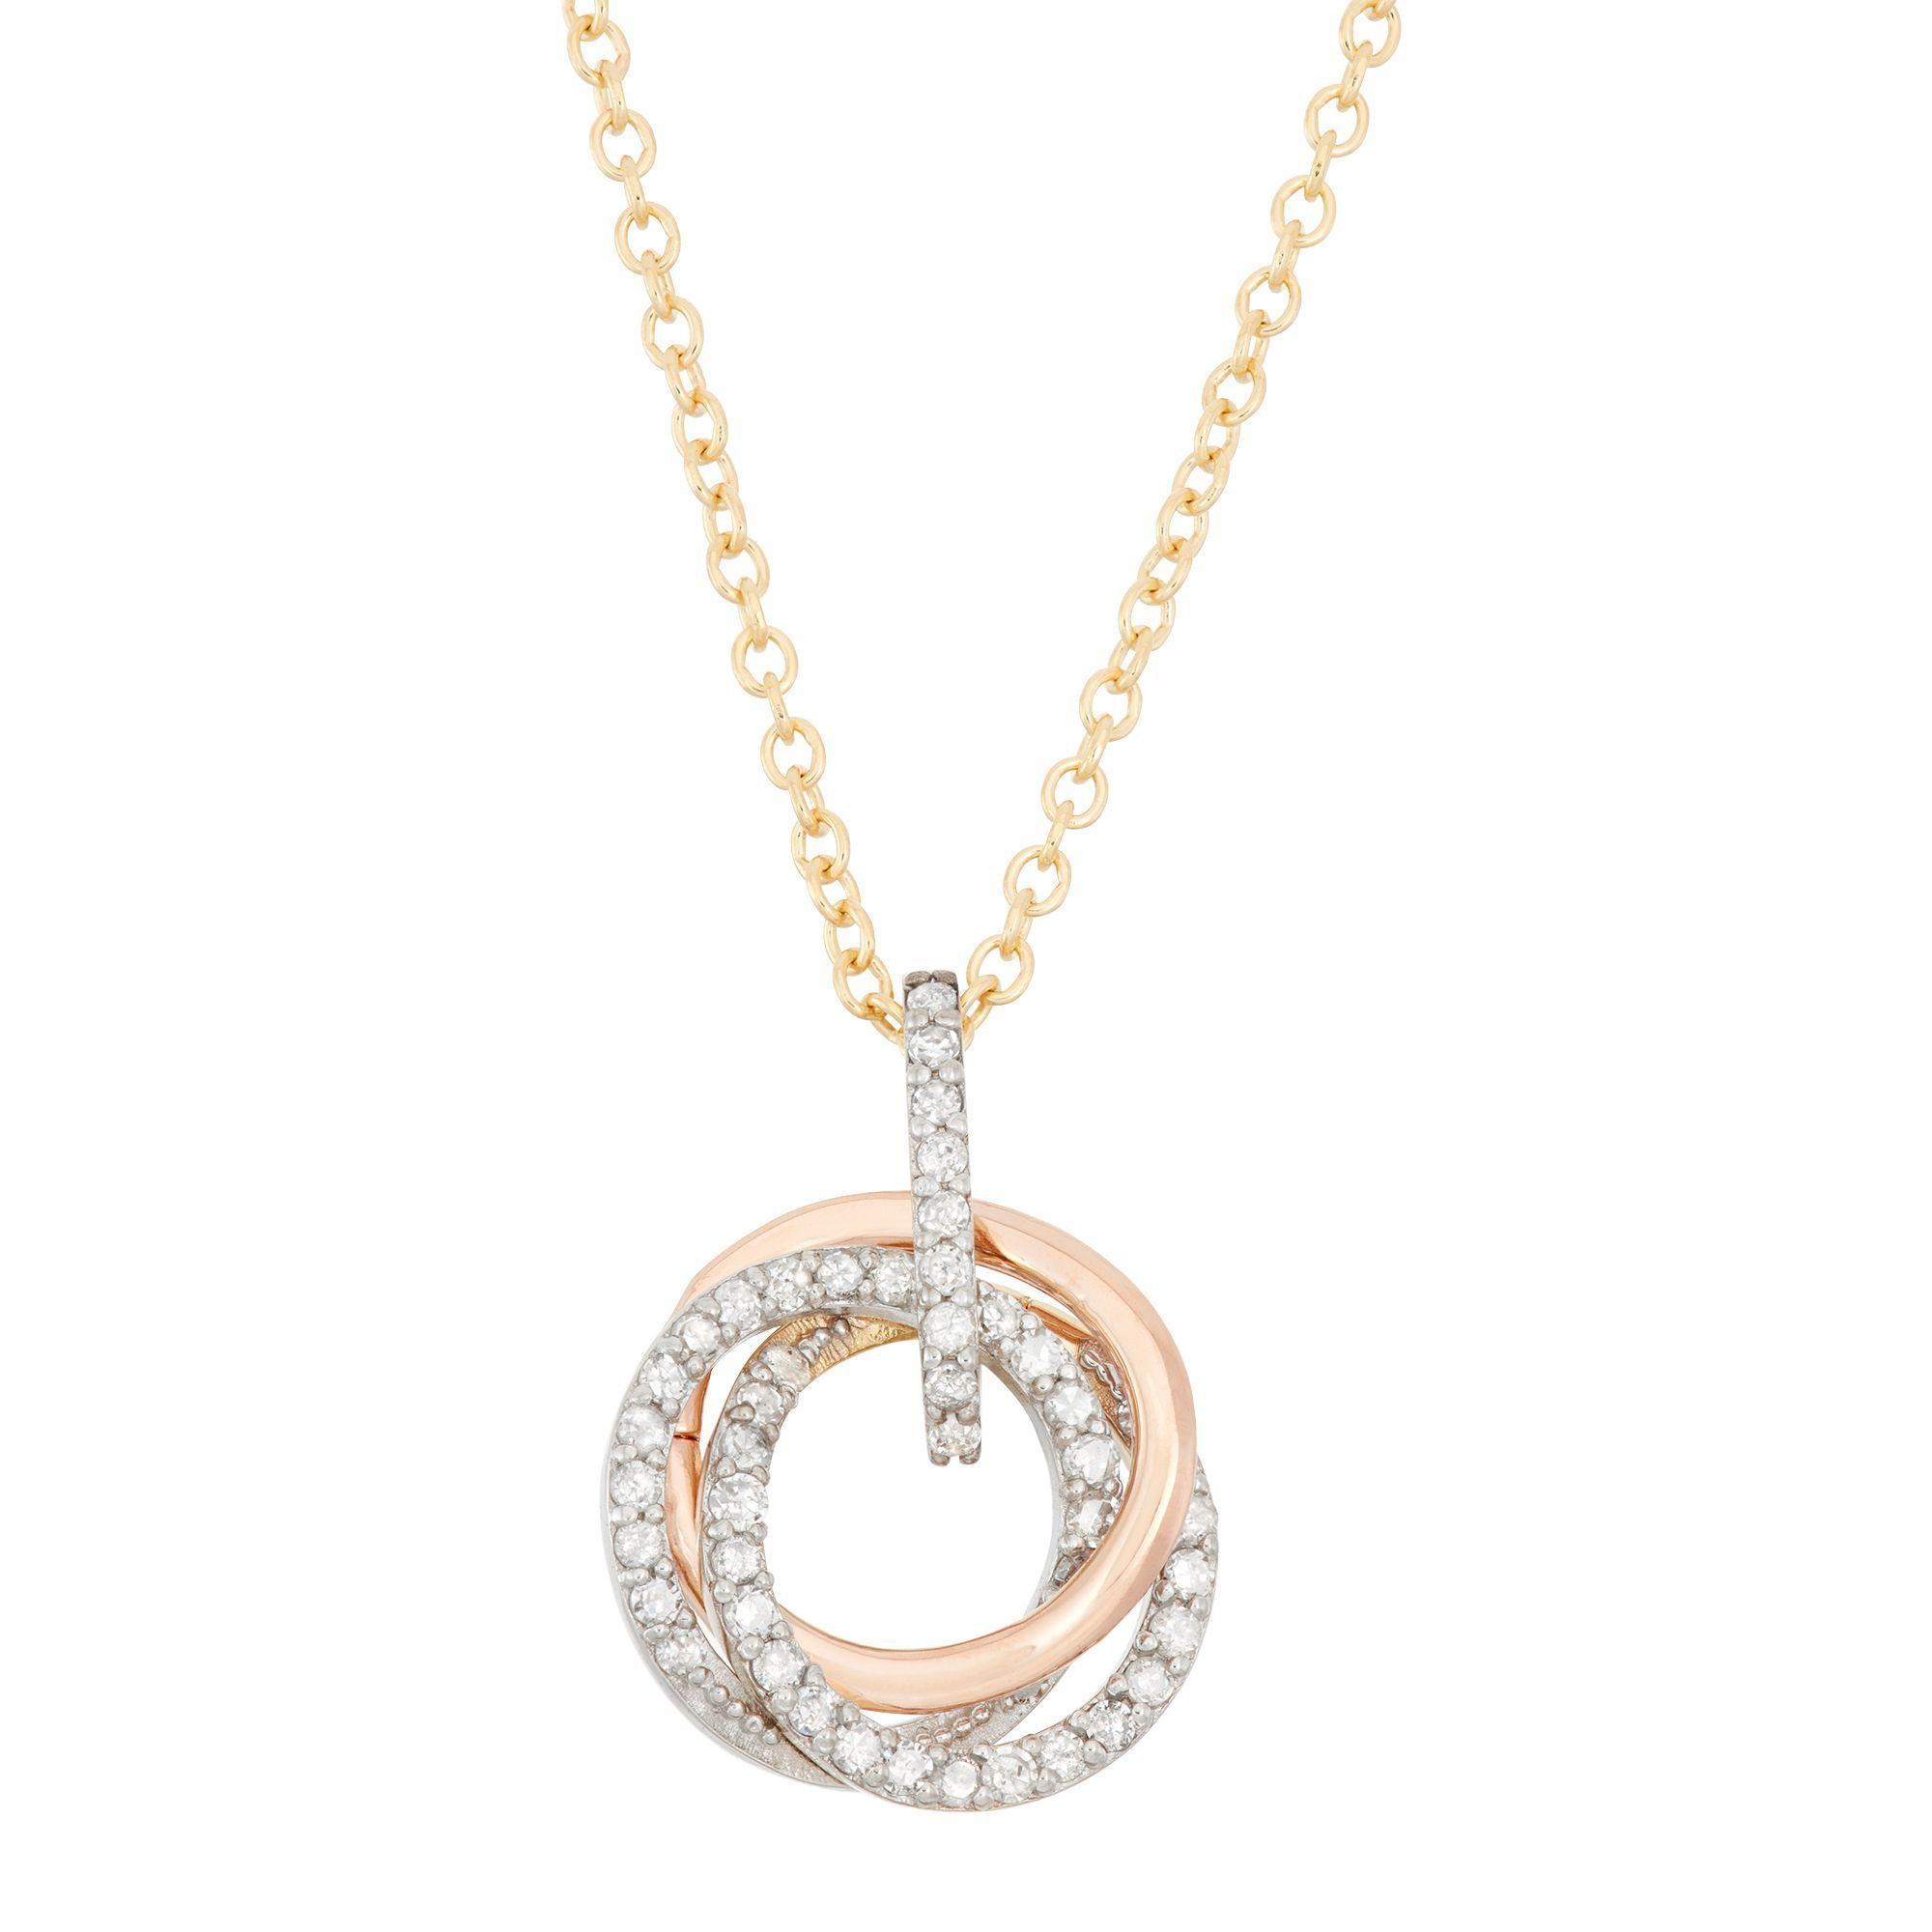 products pendant necklace ro jewelry necklaces four me diamond and pearl immesurables enlarged